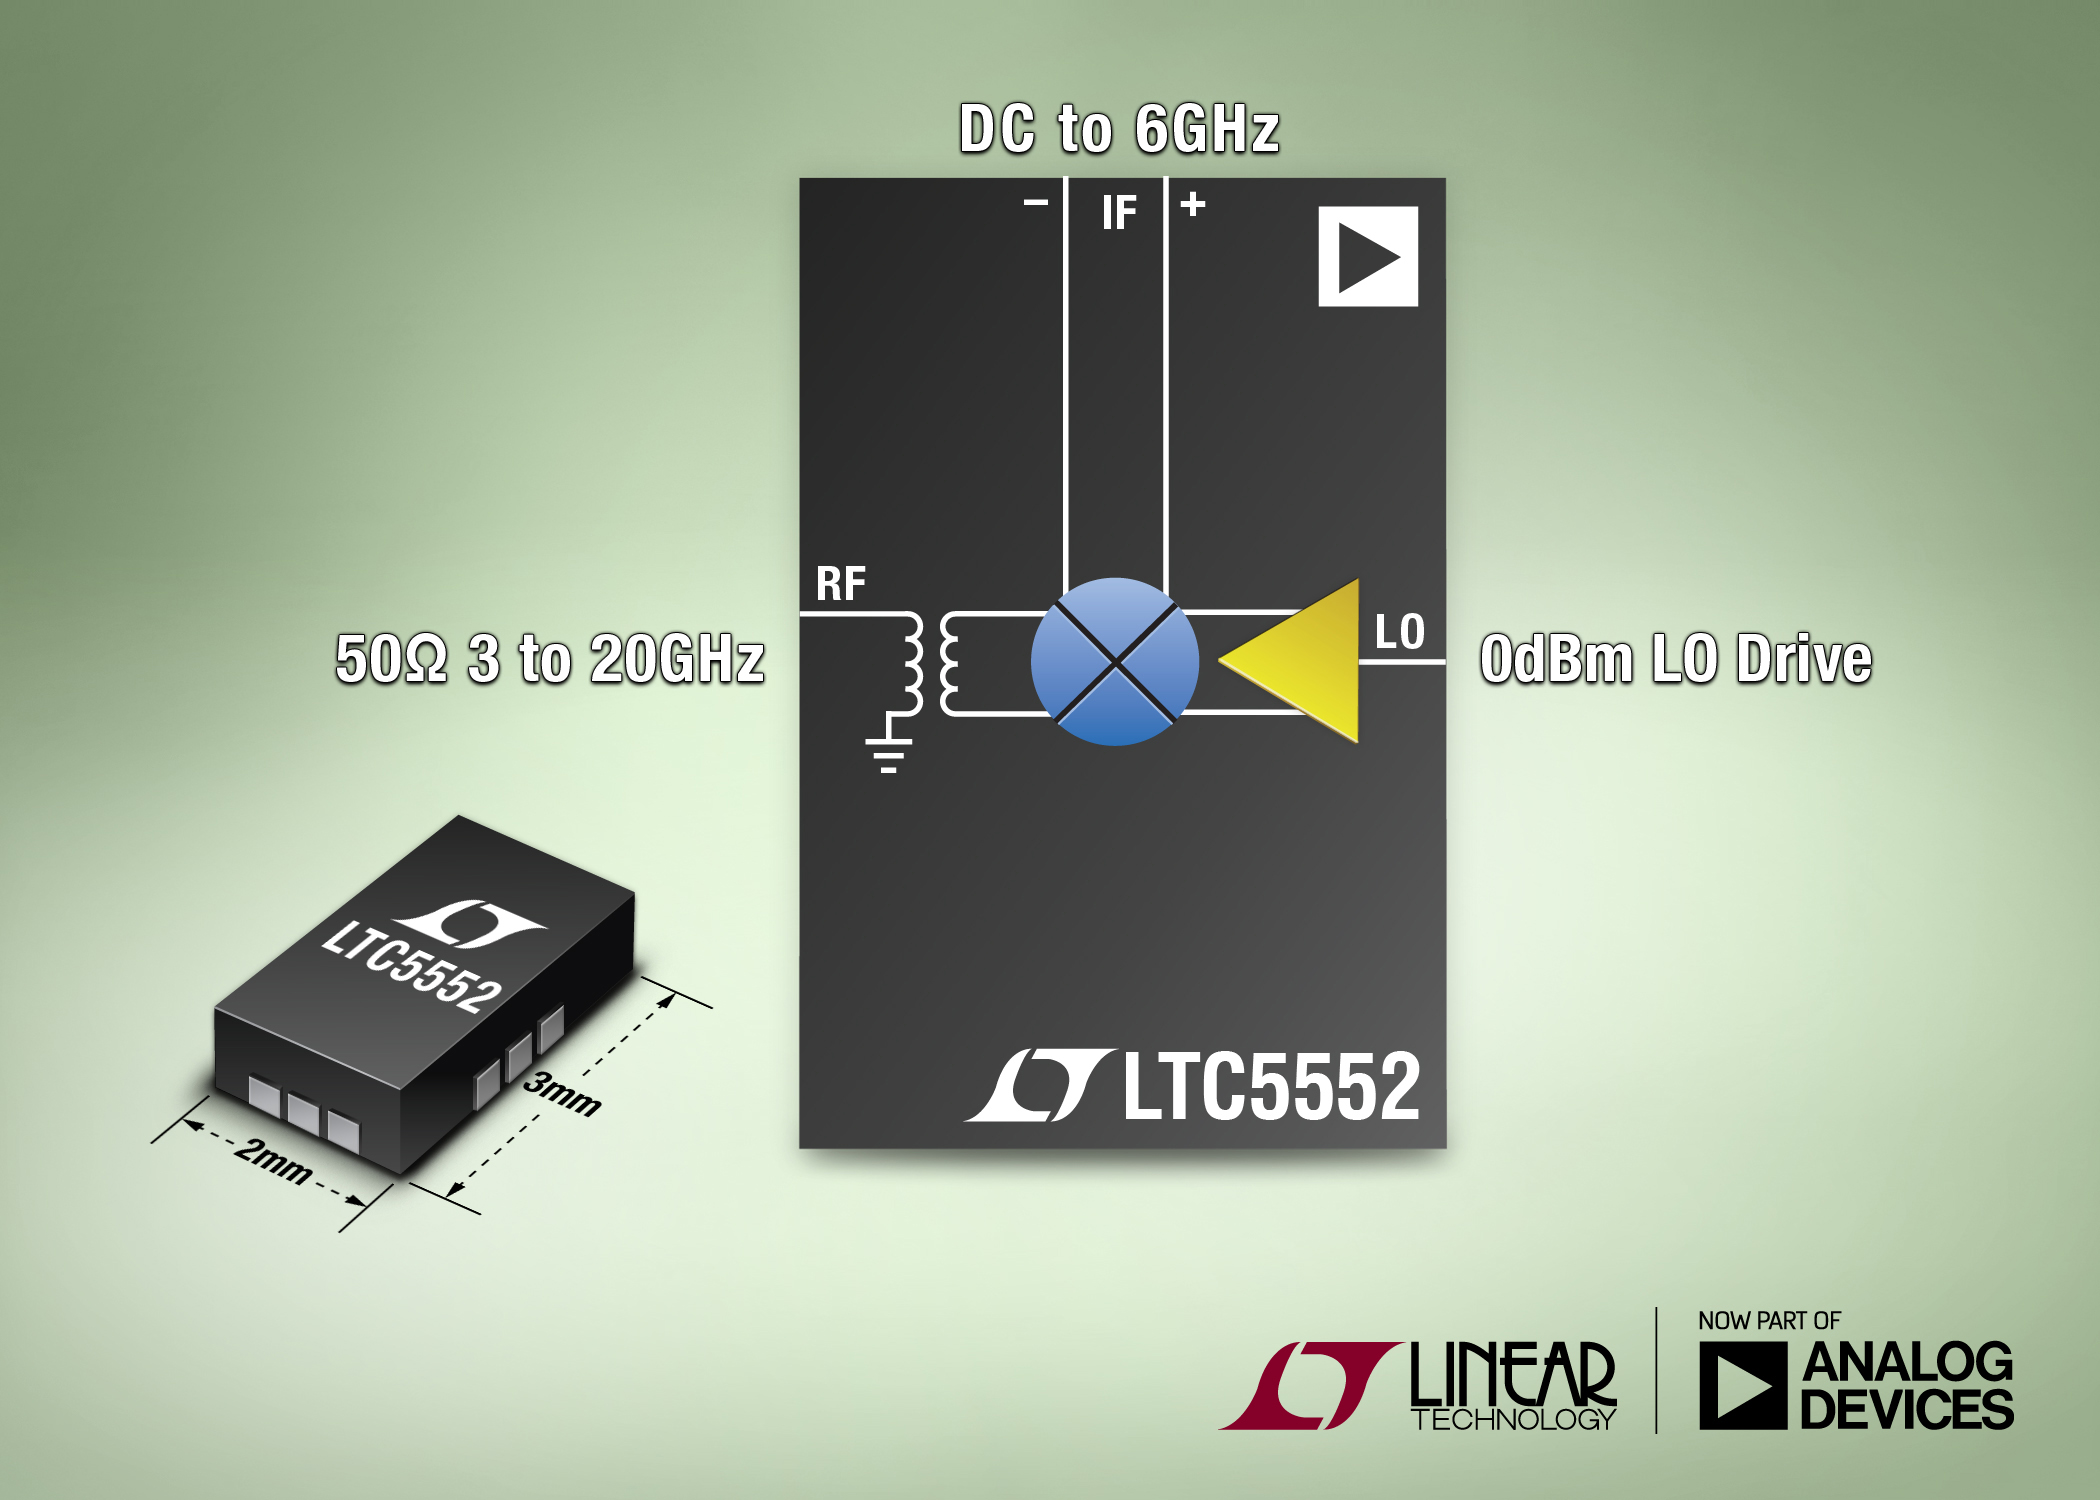 Mixer supports DC to 6GHz IF & 0dBm LO Drive